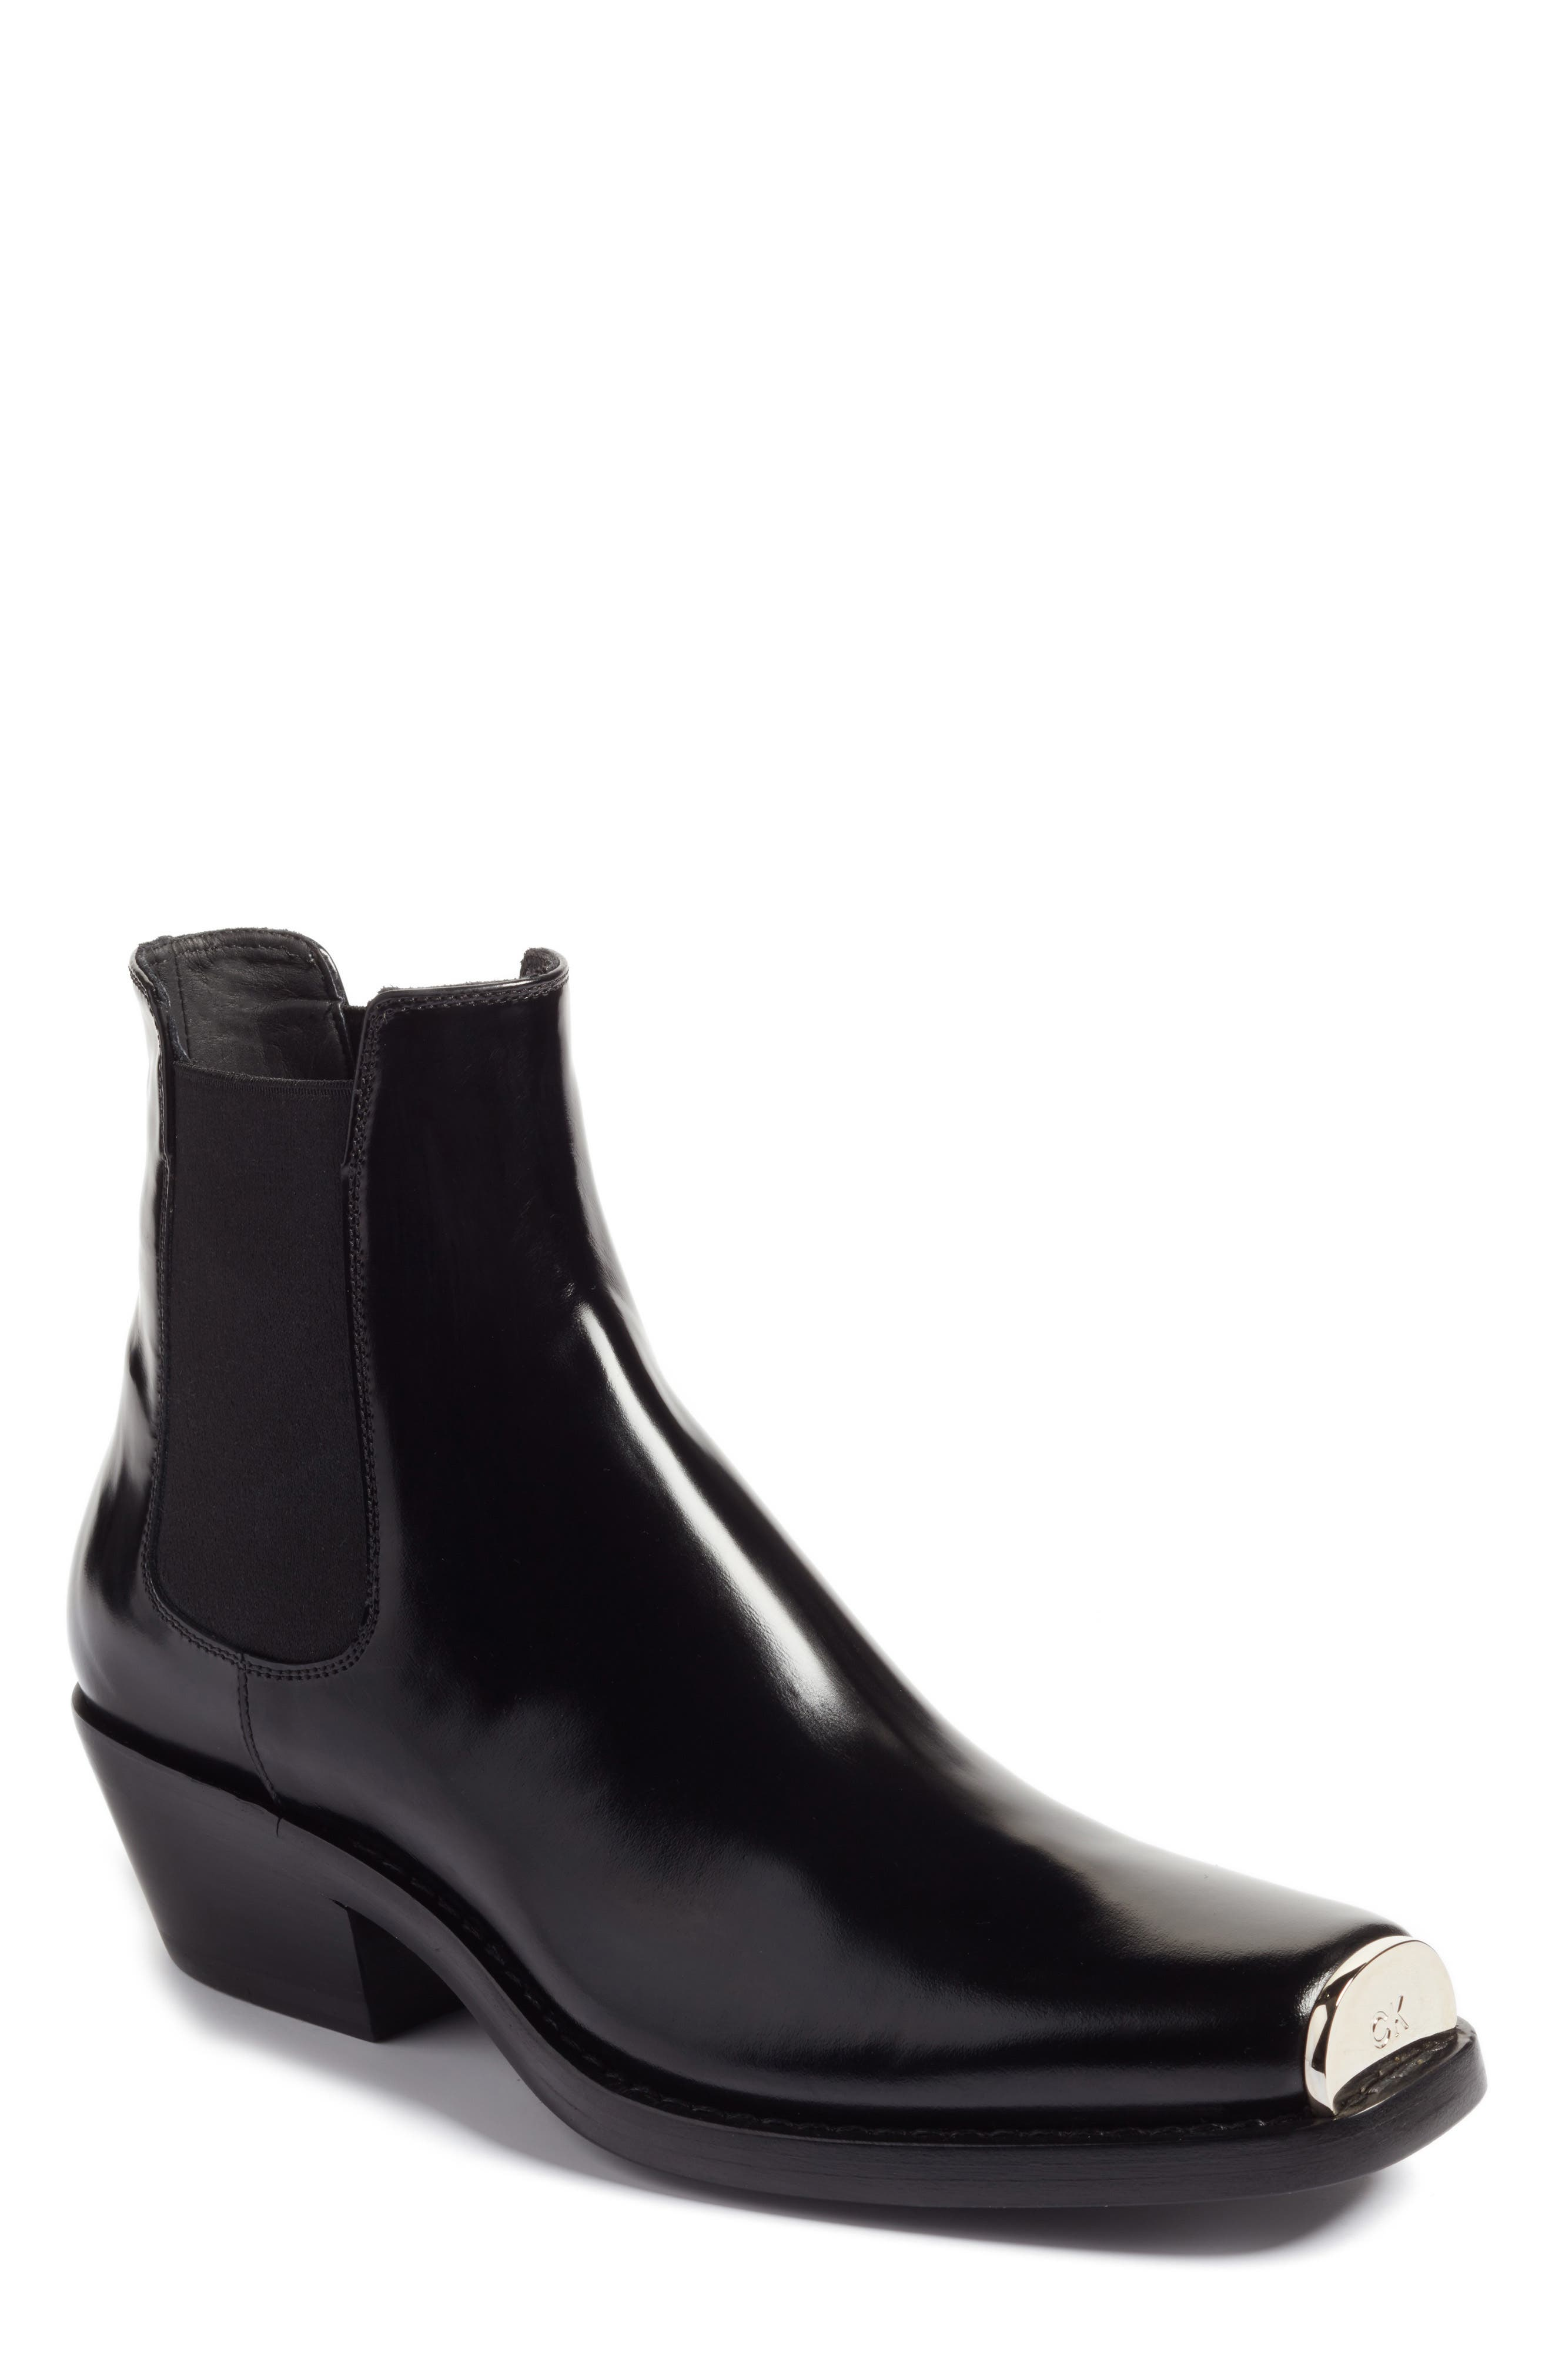 Claire Western Chelsea Boot,                             Main thumbnail 1, color,                             Black Abrasivato